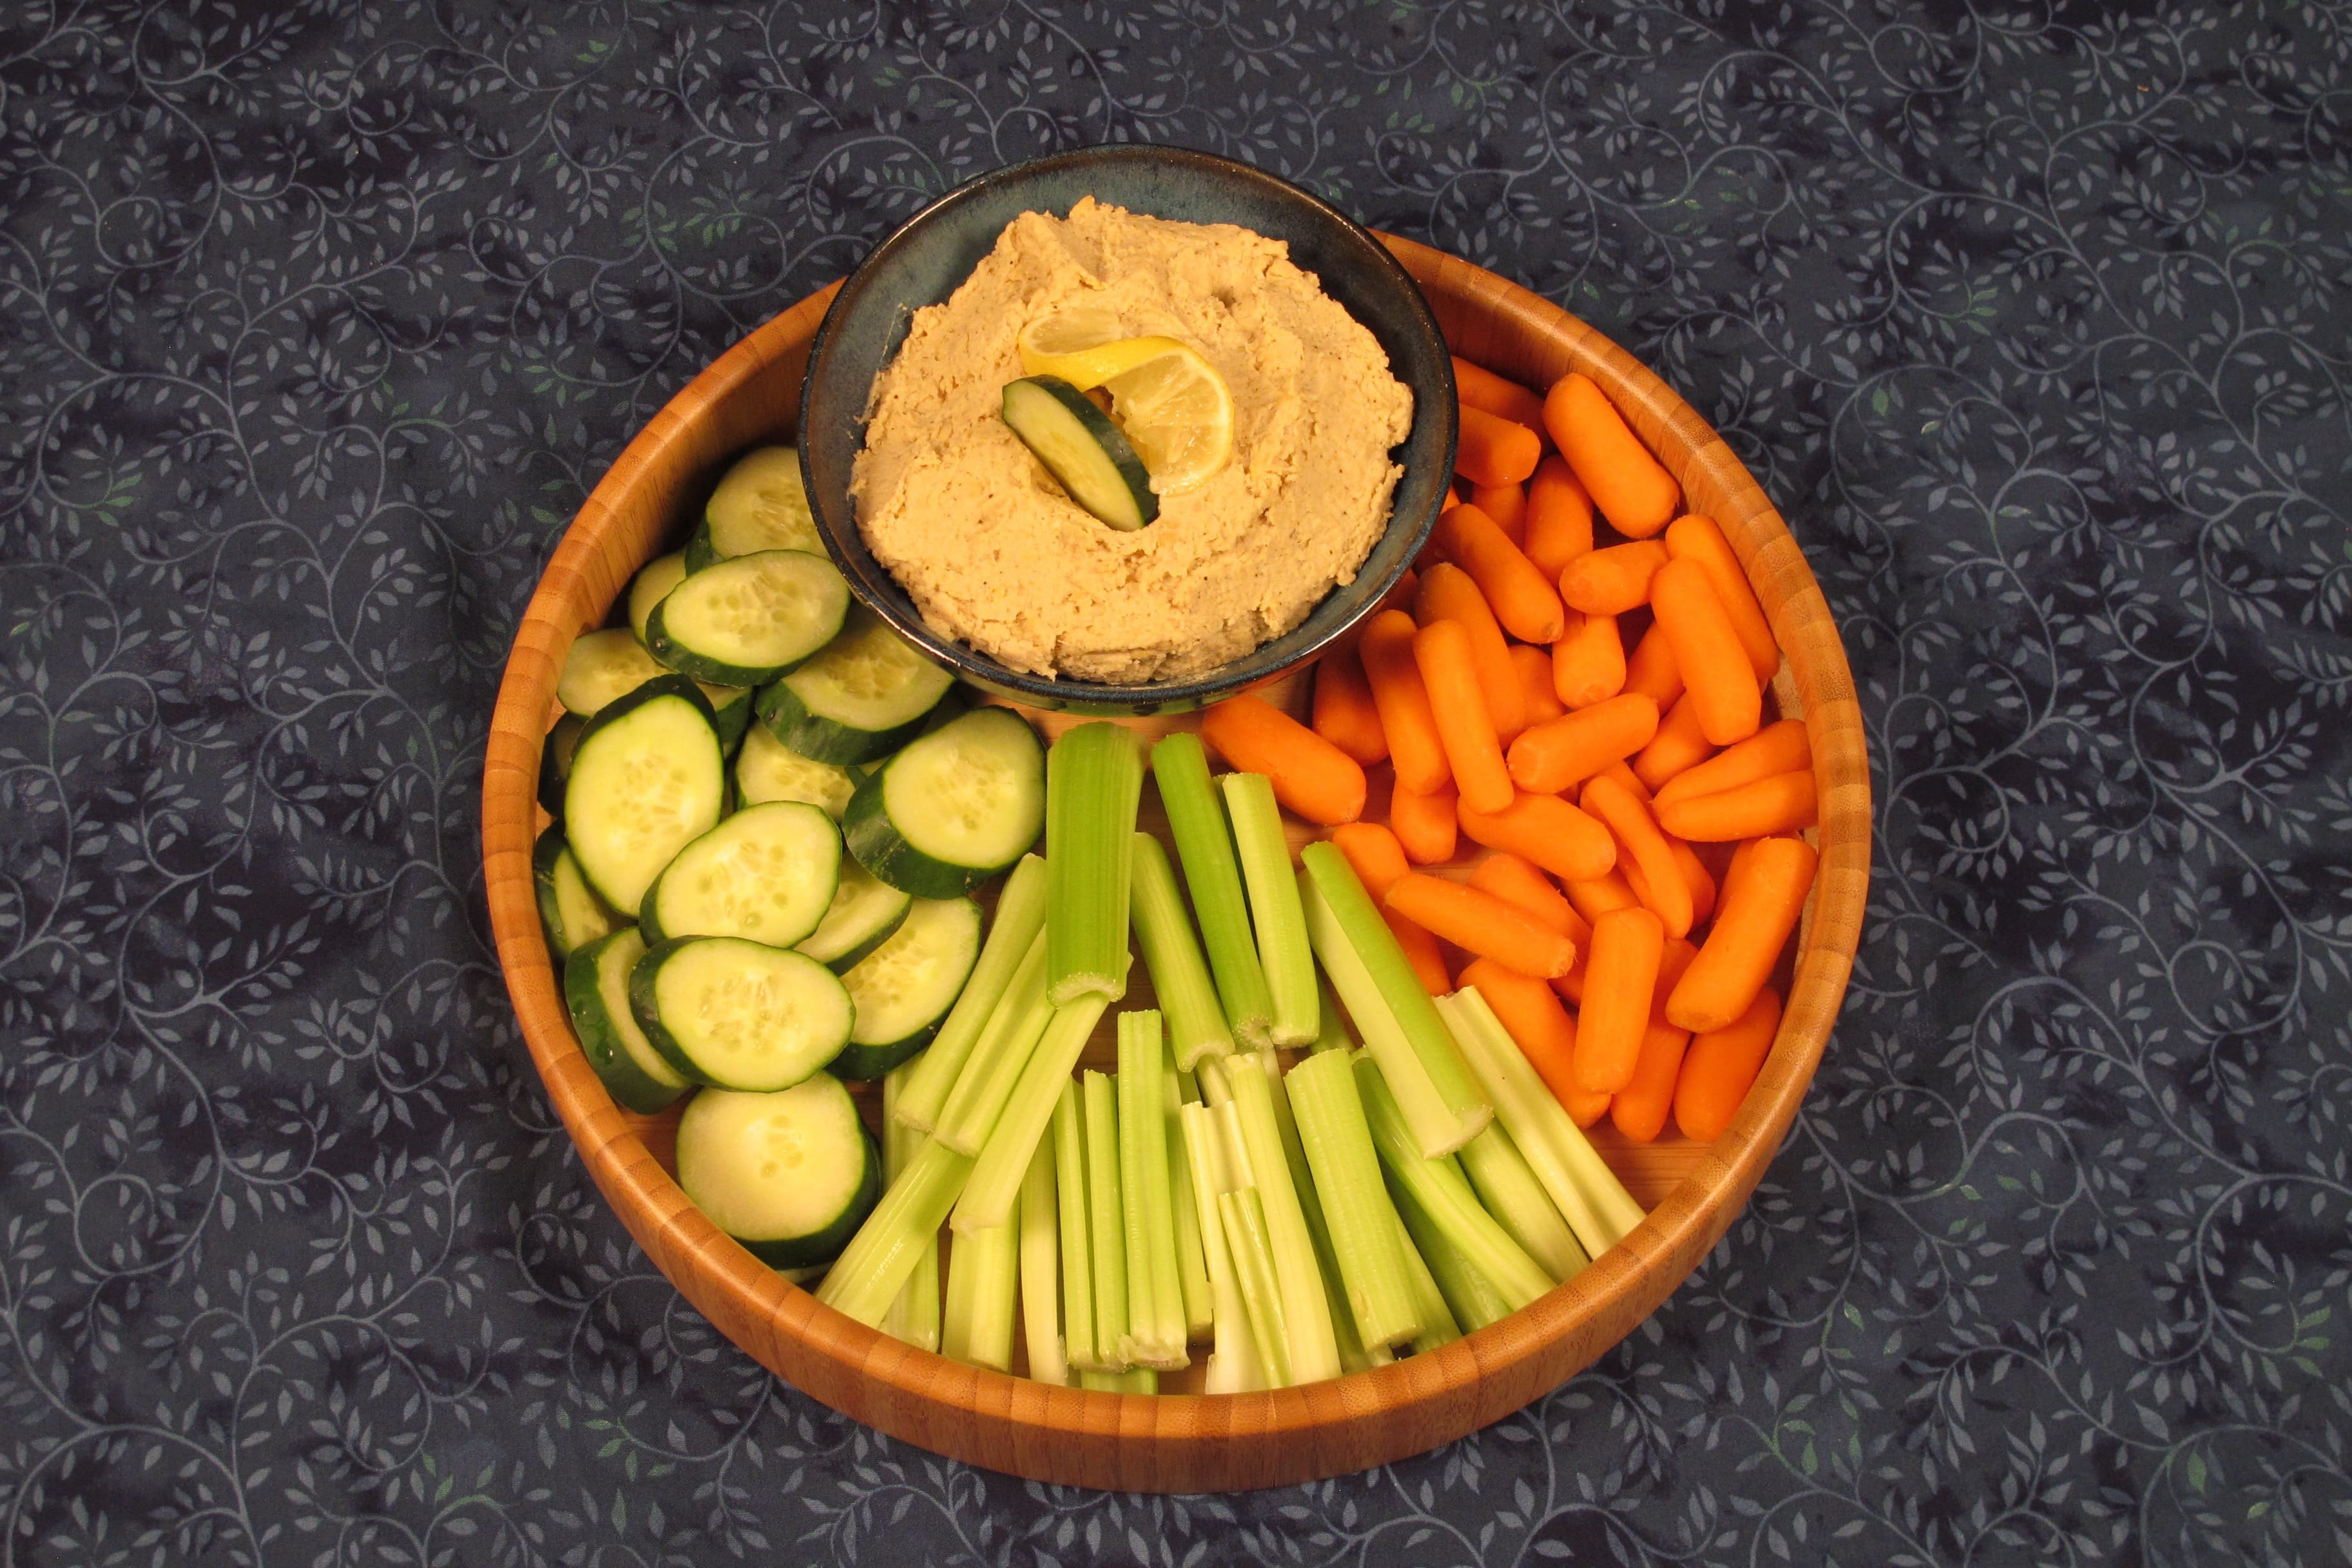 Slice or cut vegetables for dipping.